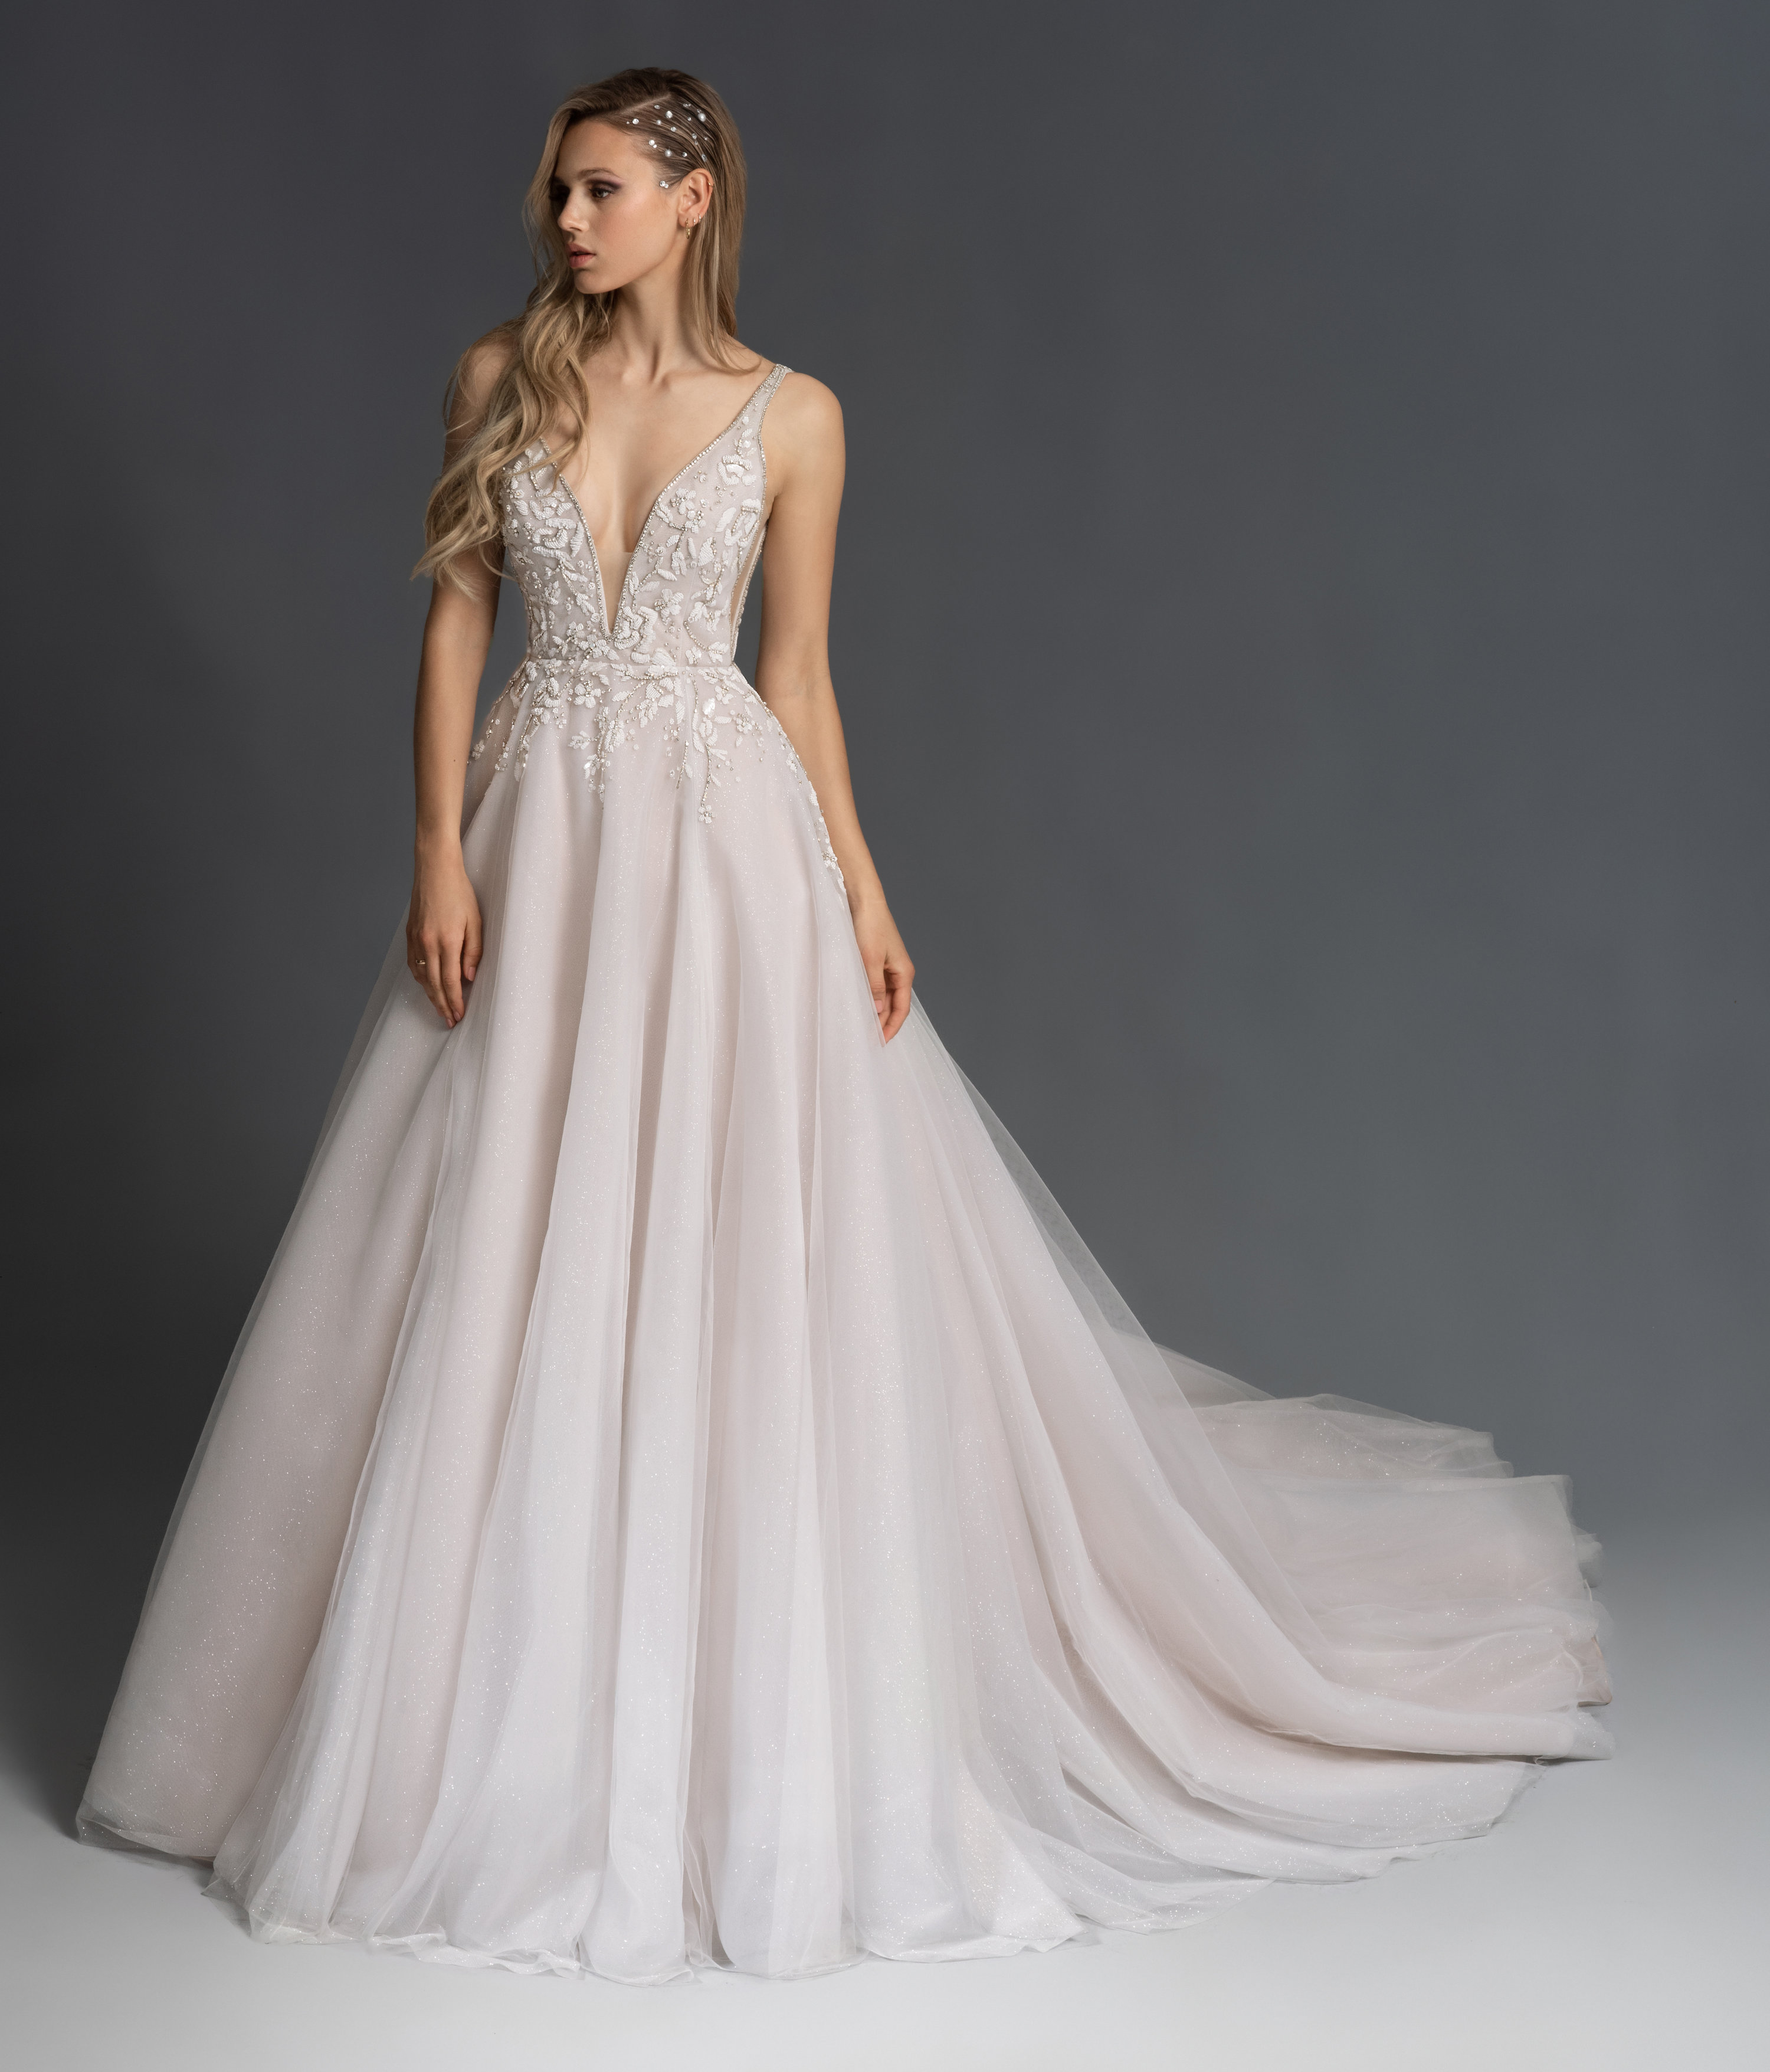 hayley-paige-bridal-fall-2019-style-6950-lauren